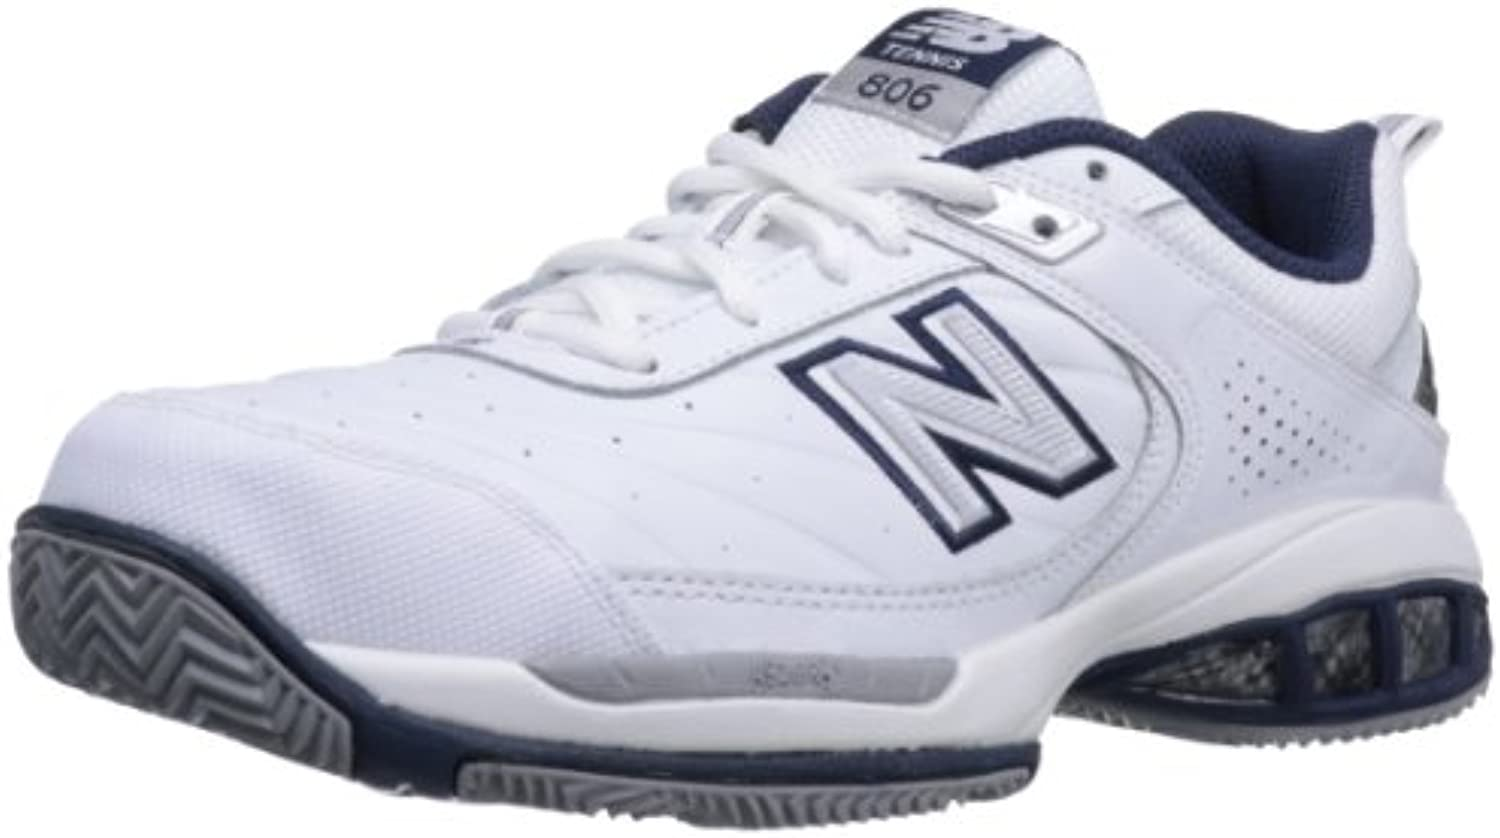 New Balance - Zapatillas de running para hombre, color, talla 15.5 UK